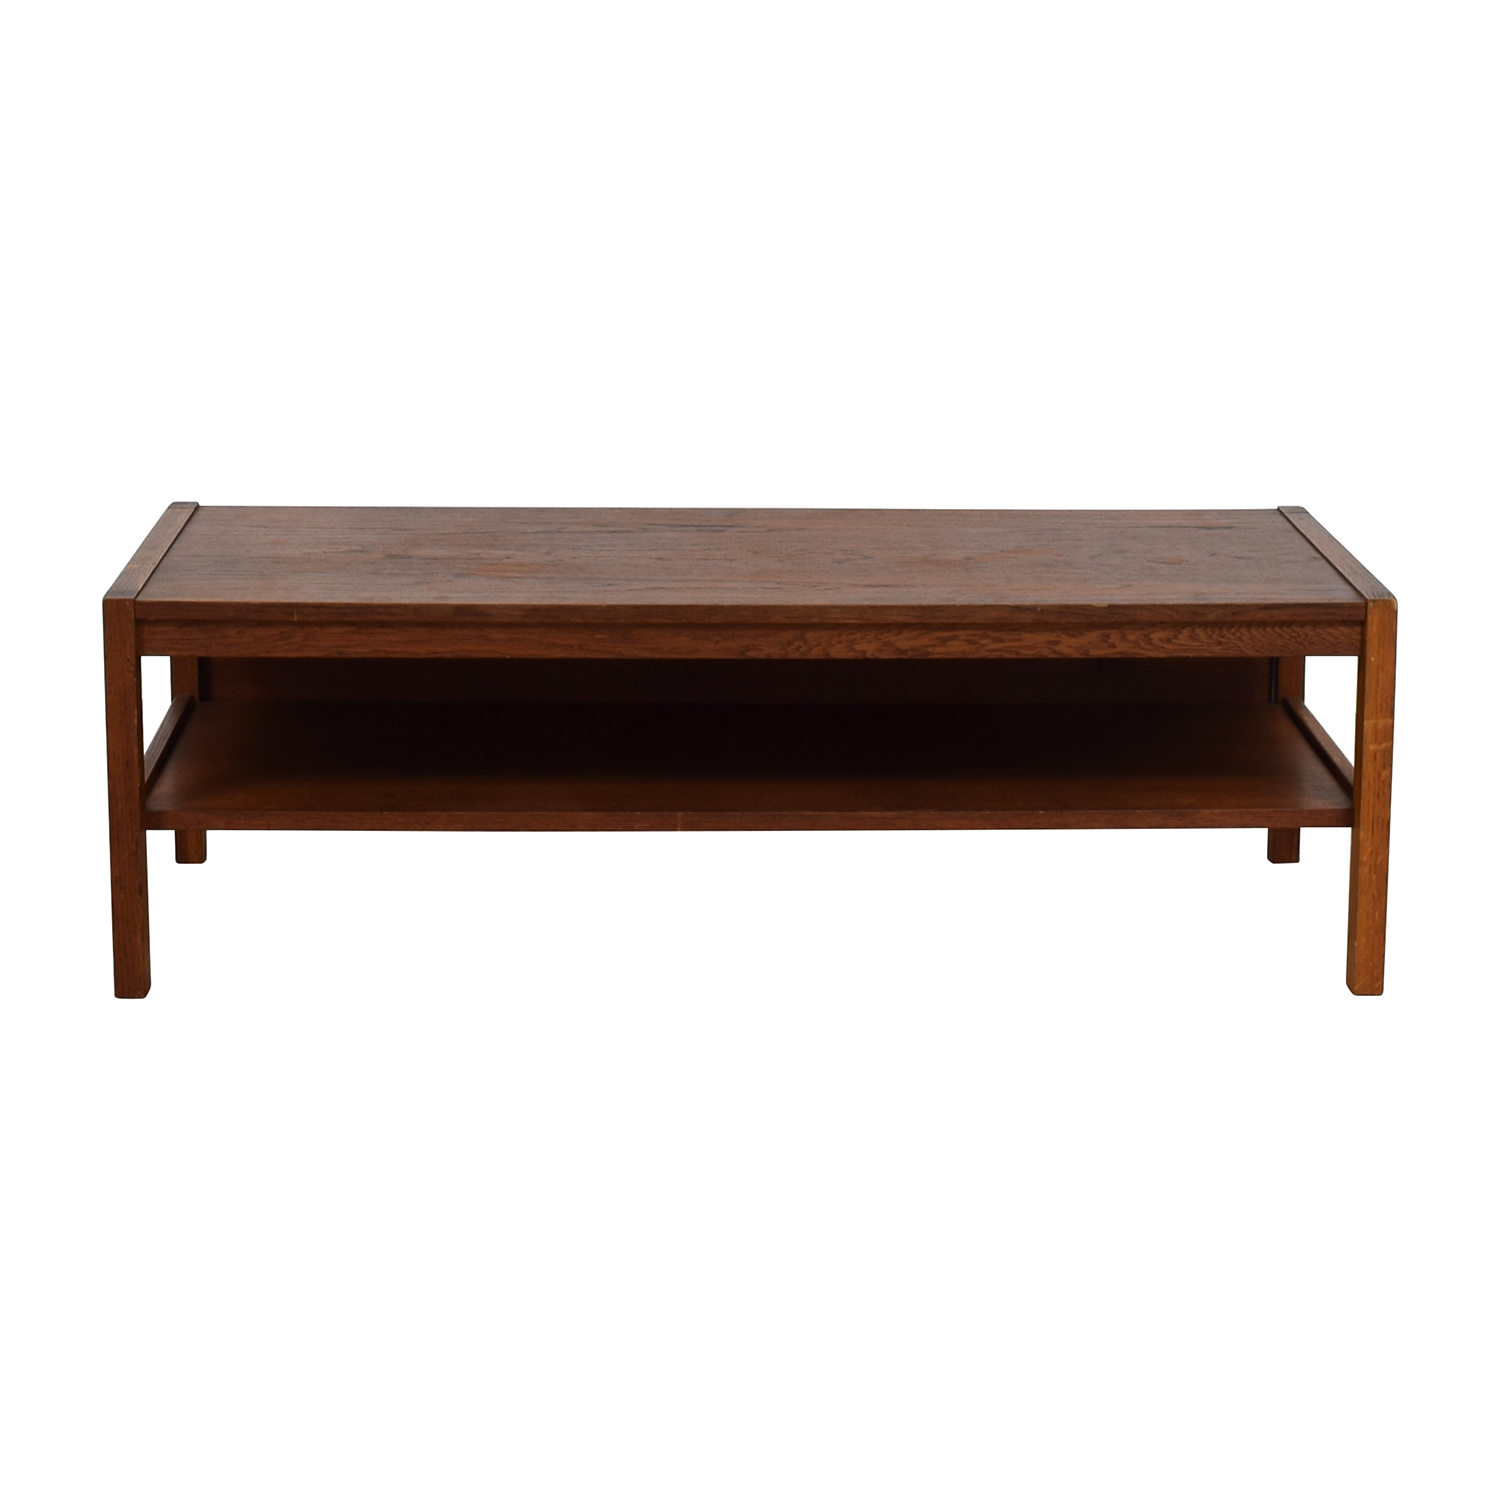 Workbench Workbench Mid-Century Wood Coffee Table w/Expansion Leaf discount